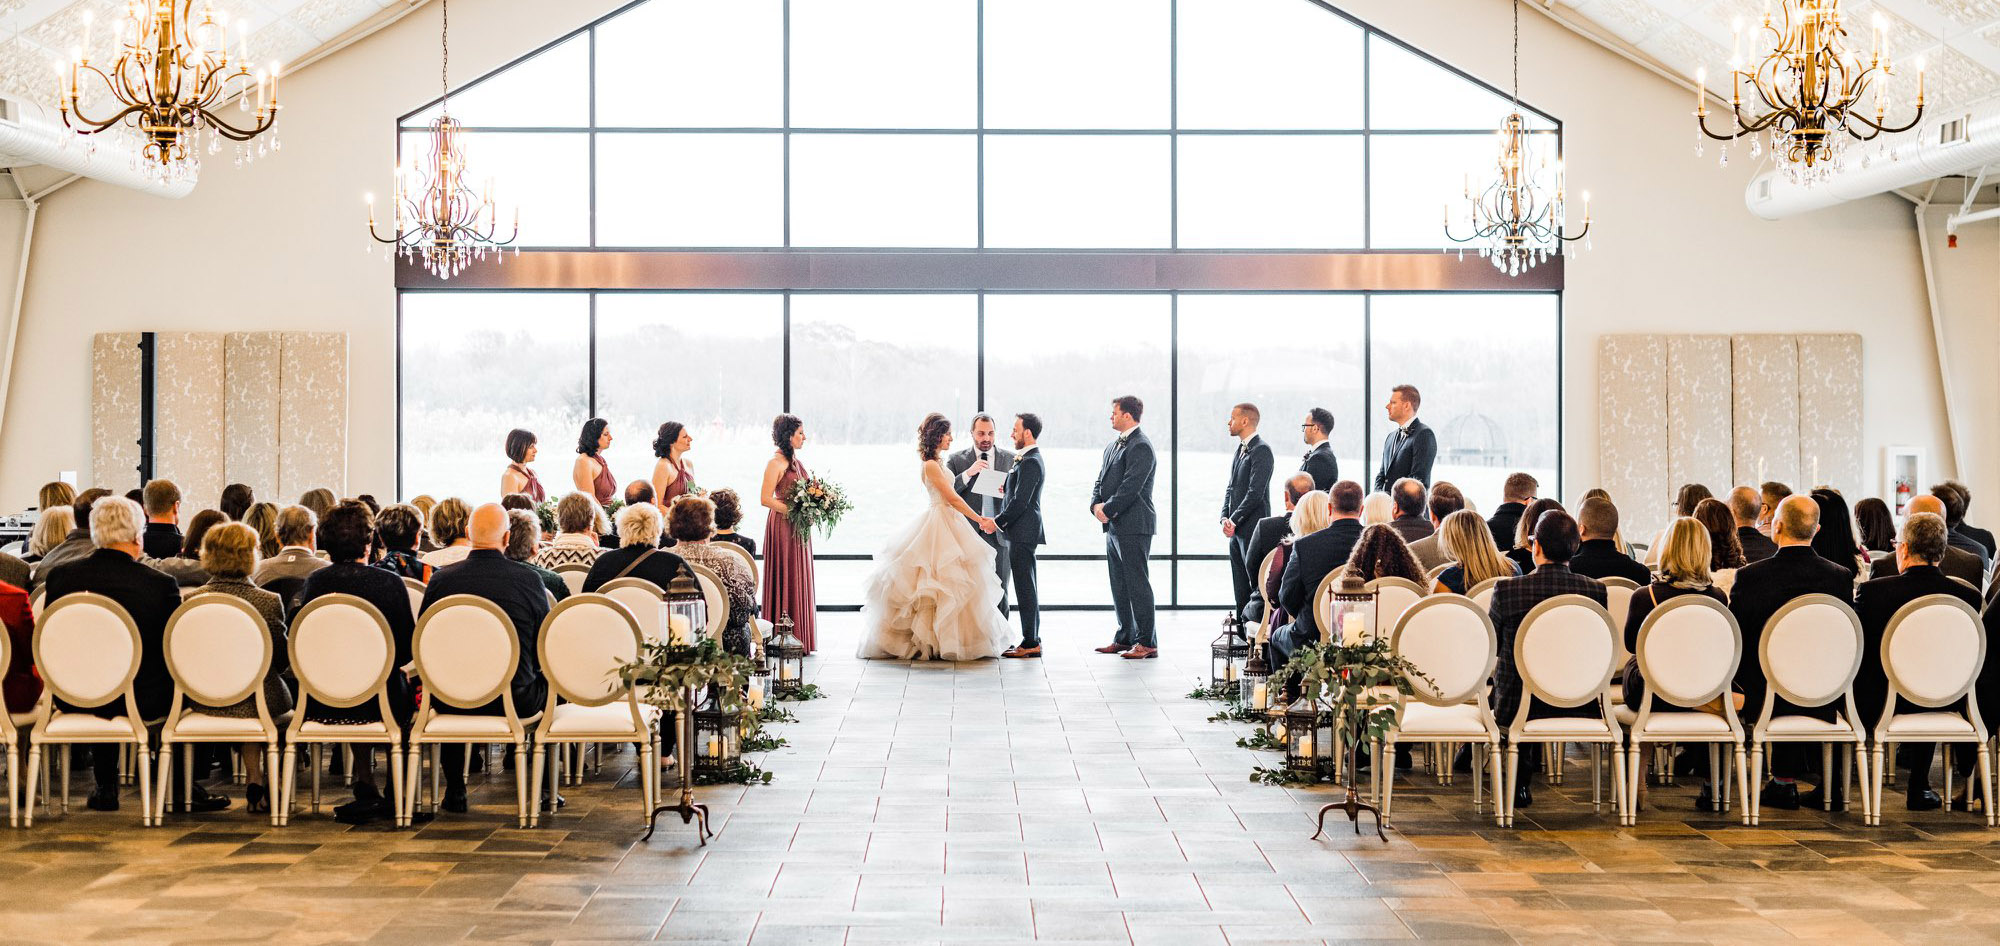 Wedding Services by Perfect Day Ceremonies